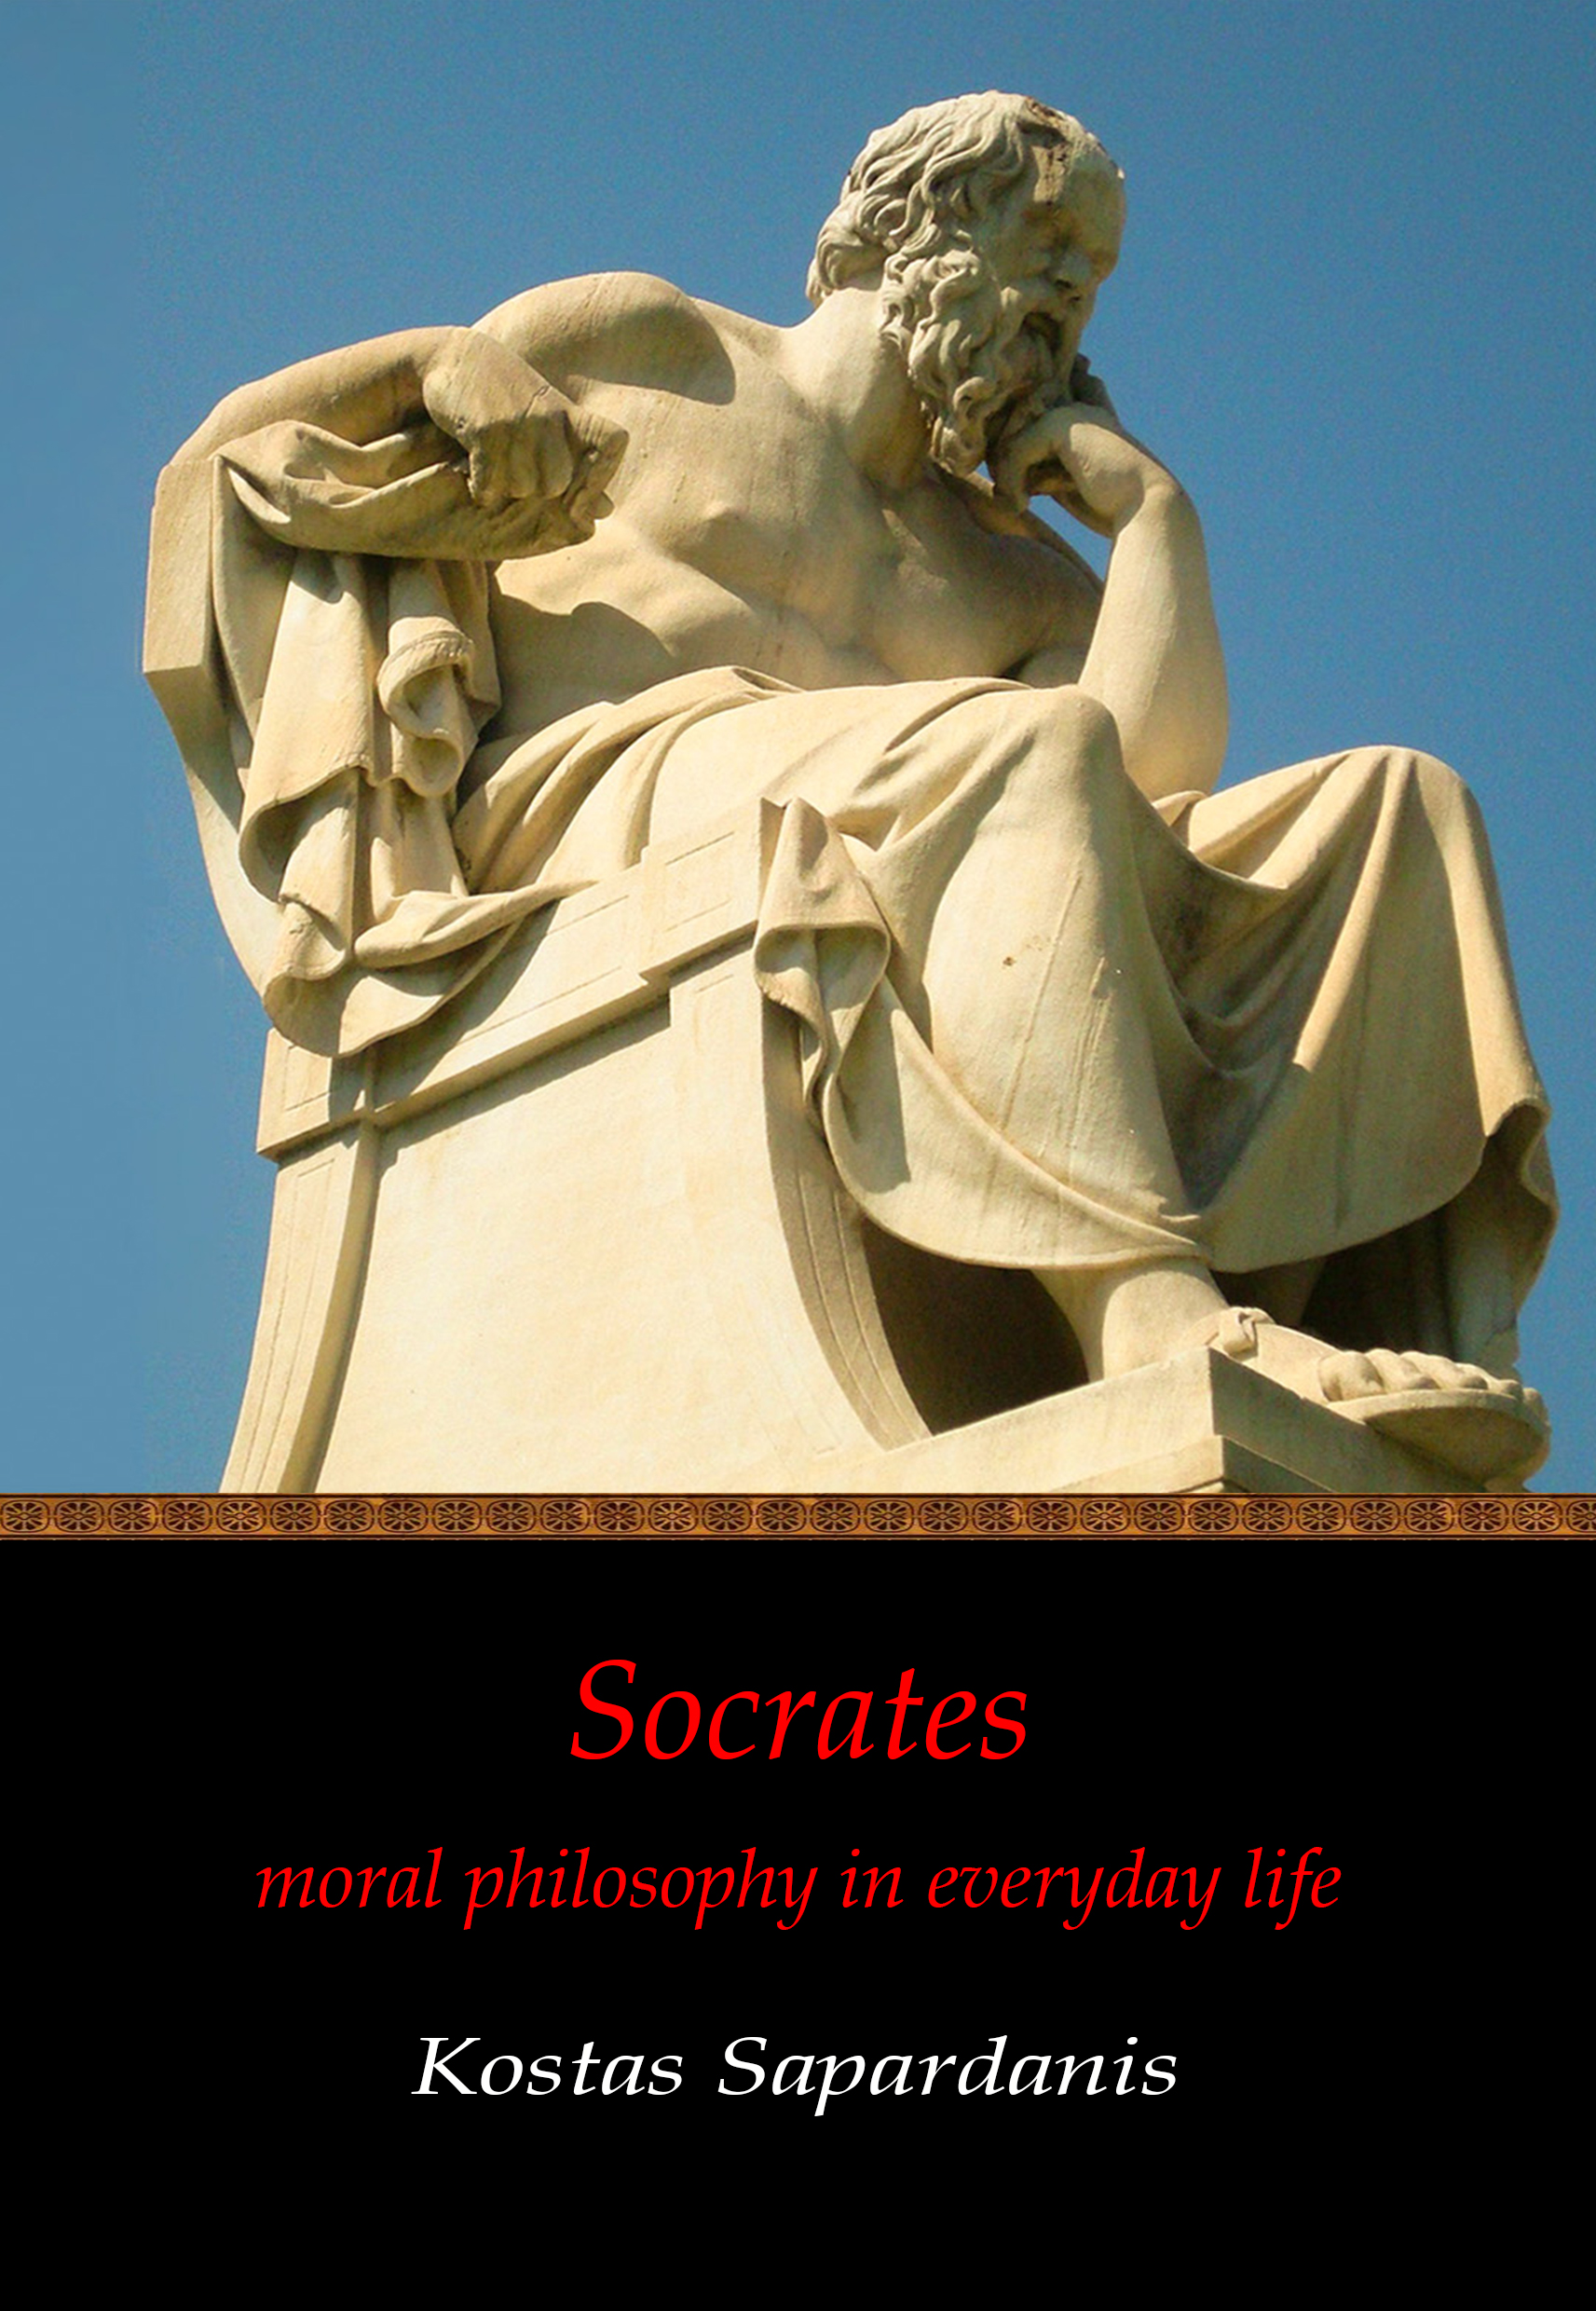 an examination of socratess philosophy Socrates (469-399 bc) socrates, an athenian greek of the second half of the fifth century bc , wrote no philosophical works but was uniquely influential in the later history of philosophy his philosophical interests were restricted to ethics and the conduct of life, topics which thereafter became central to philosophy.